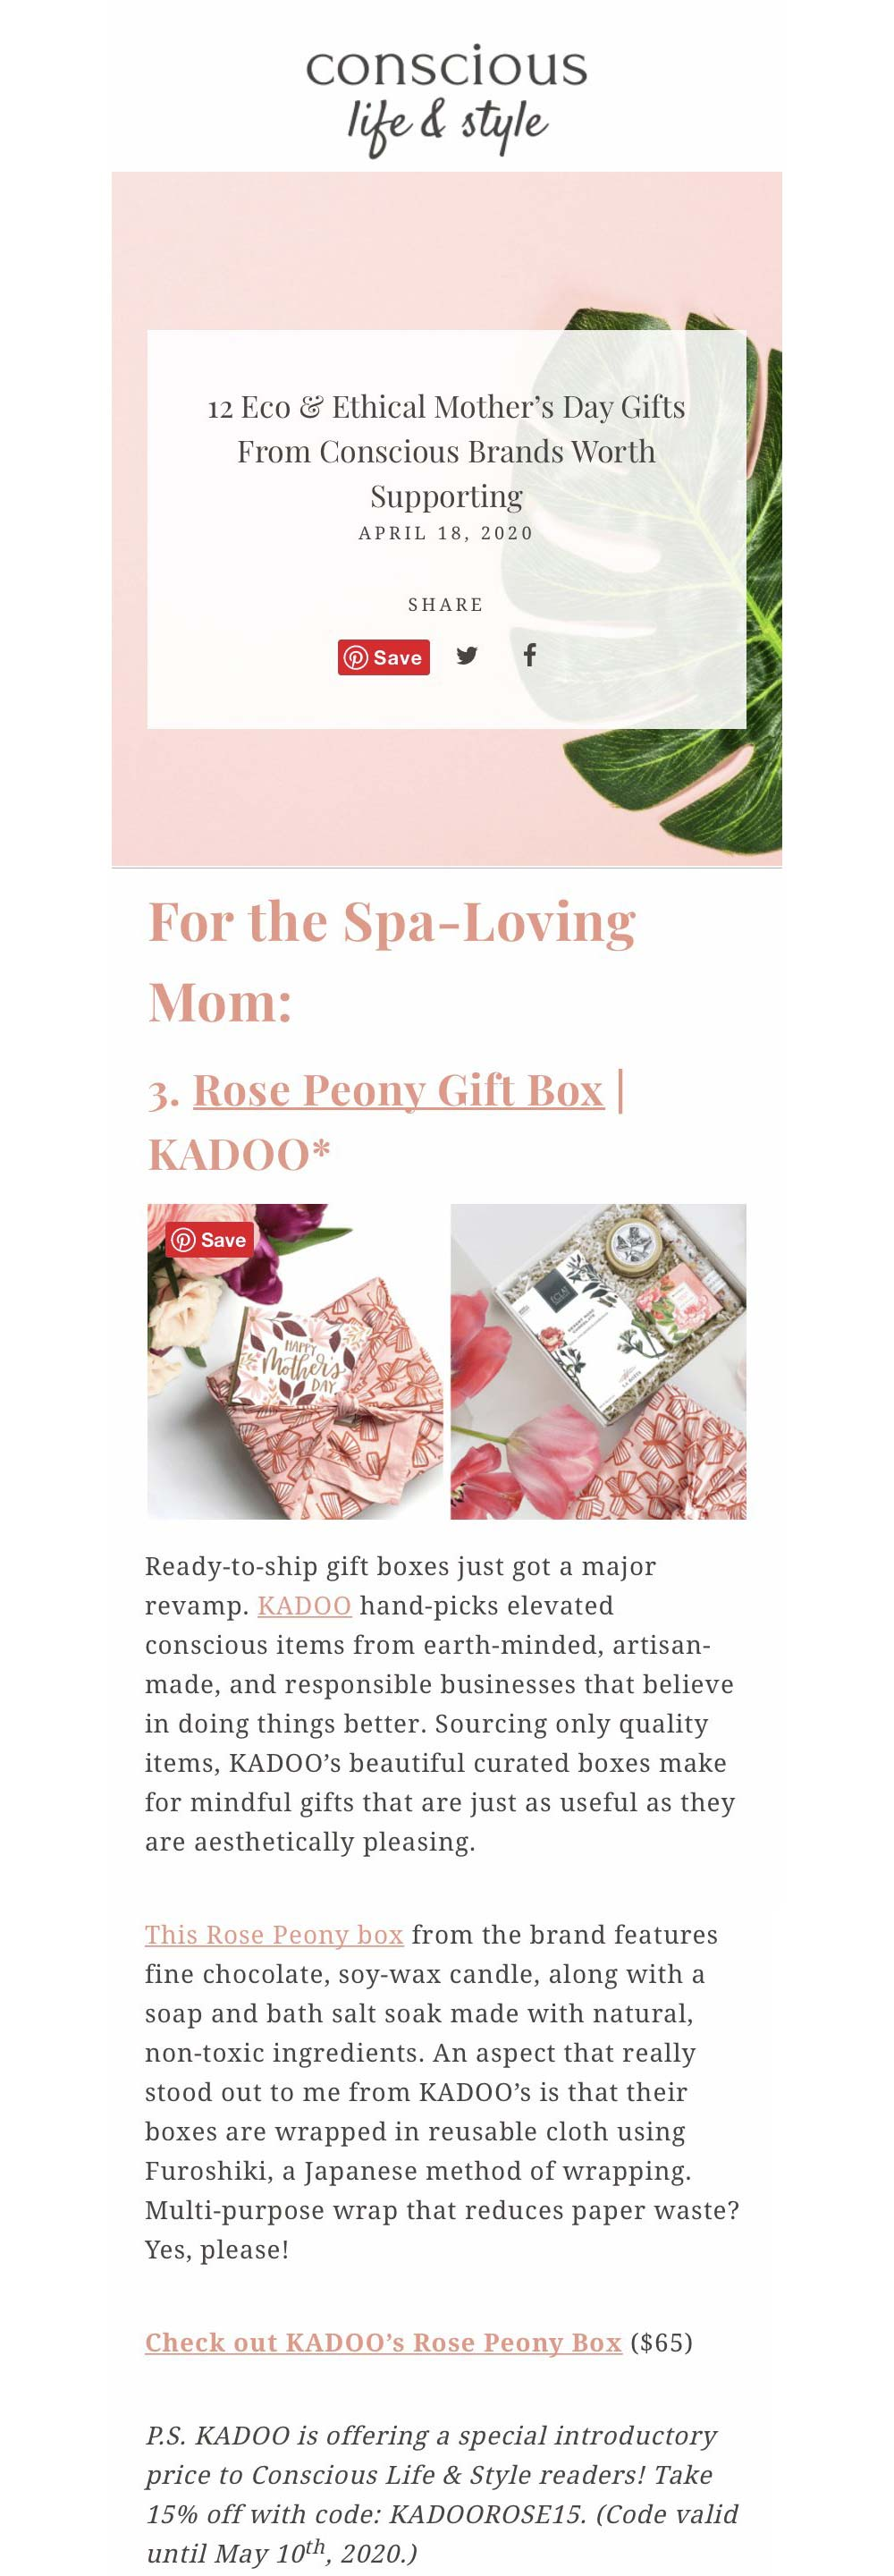 kadoo Conscious Life and Style Eco & Ethical Mother's Day Gifts for the spa-loving mom.